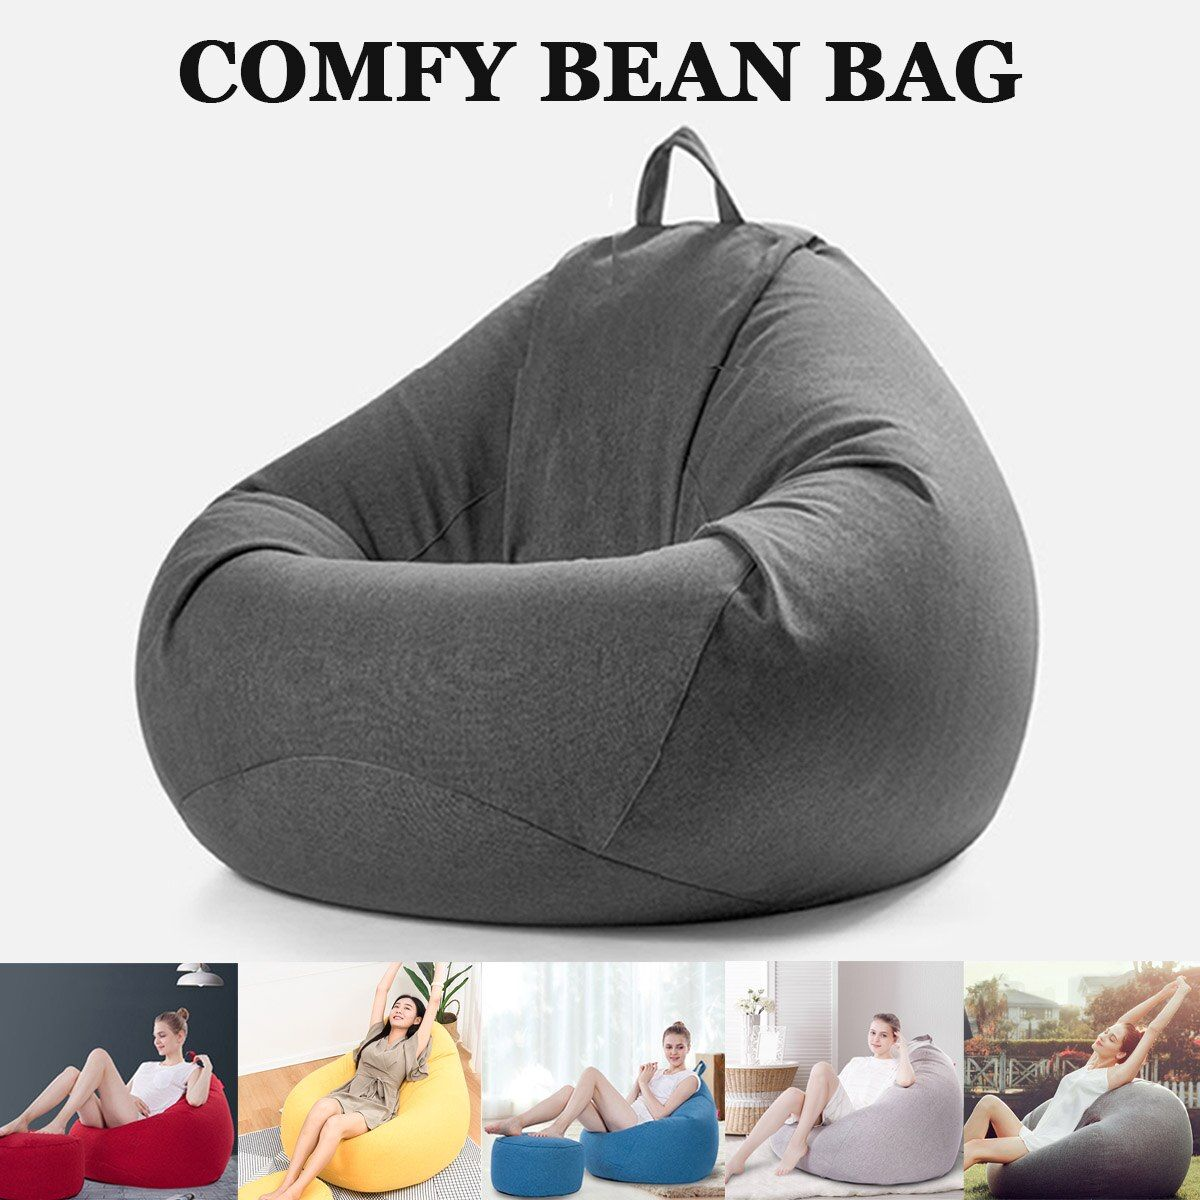 Oversized Bean Bag Chairs Ikea Oversized Bean Bag Chairs Bean Bag Chair Oversized Bean Bags